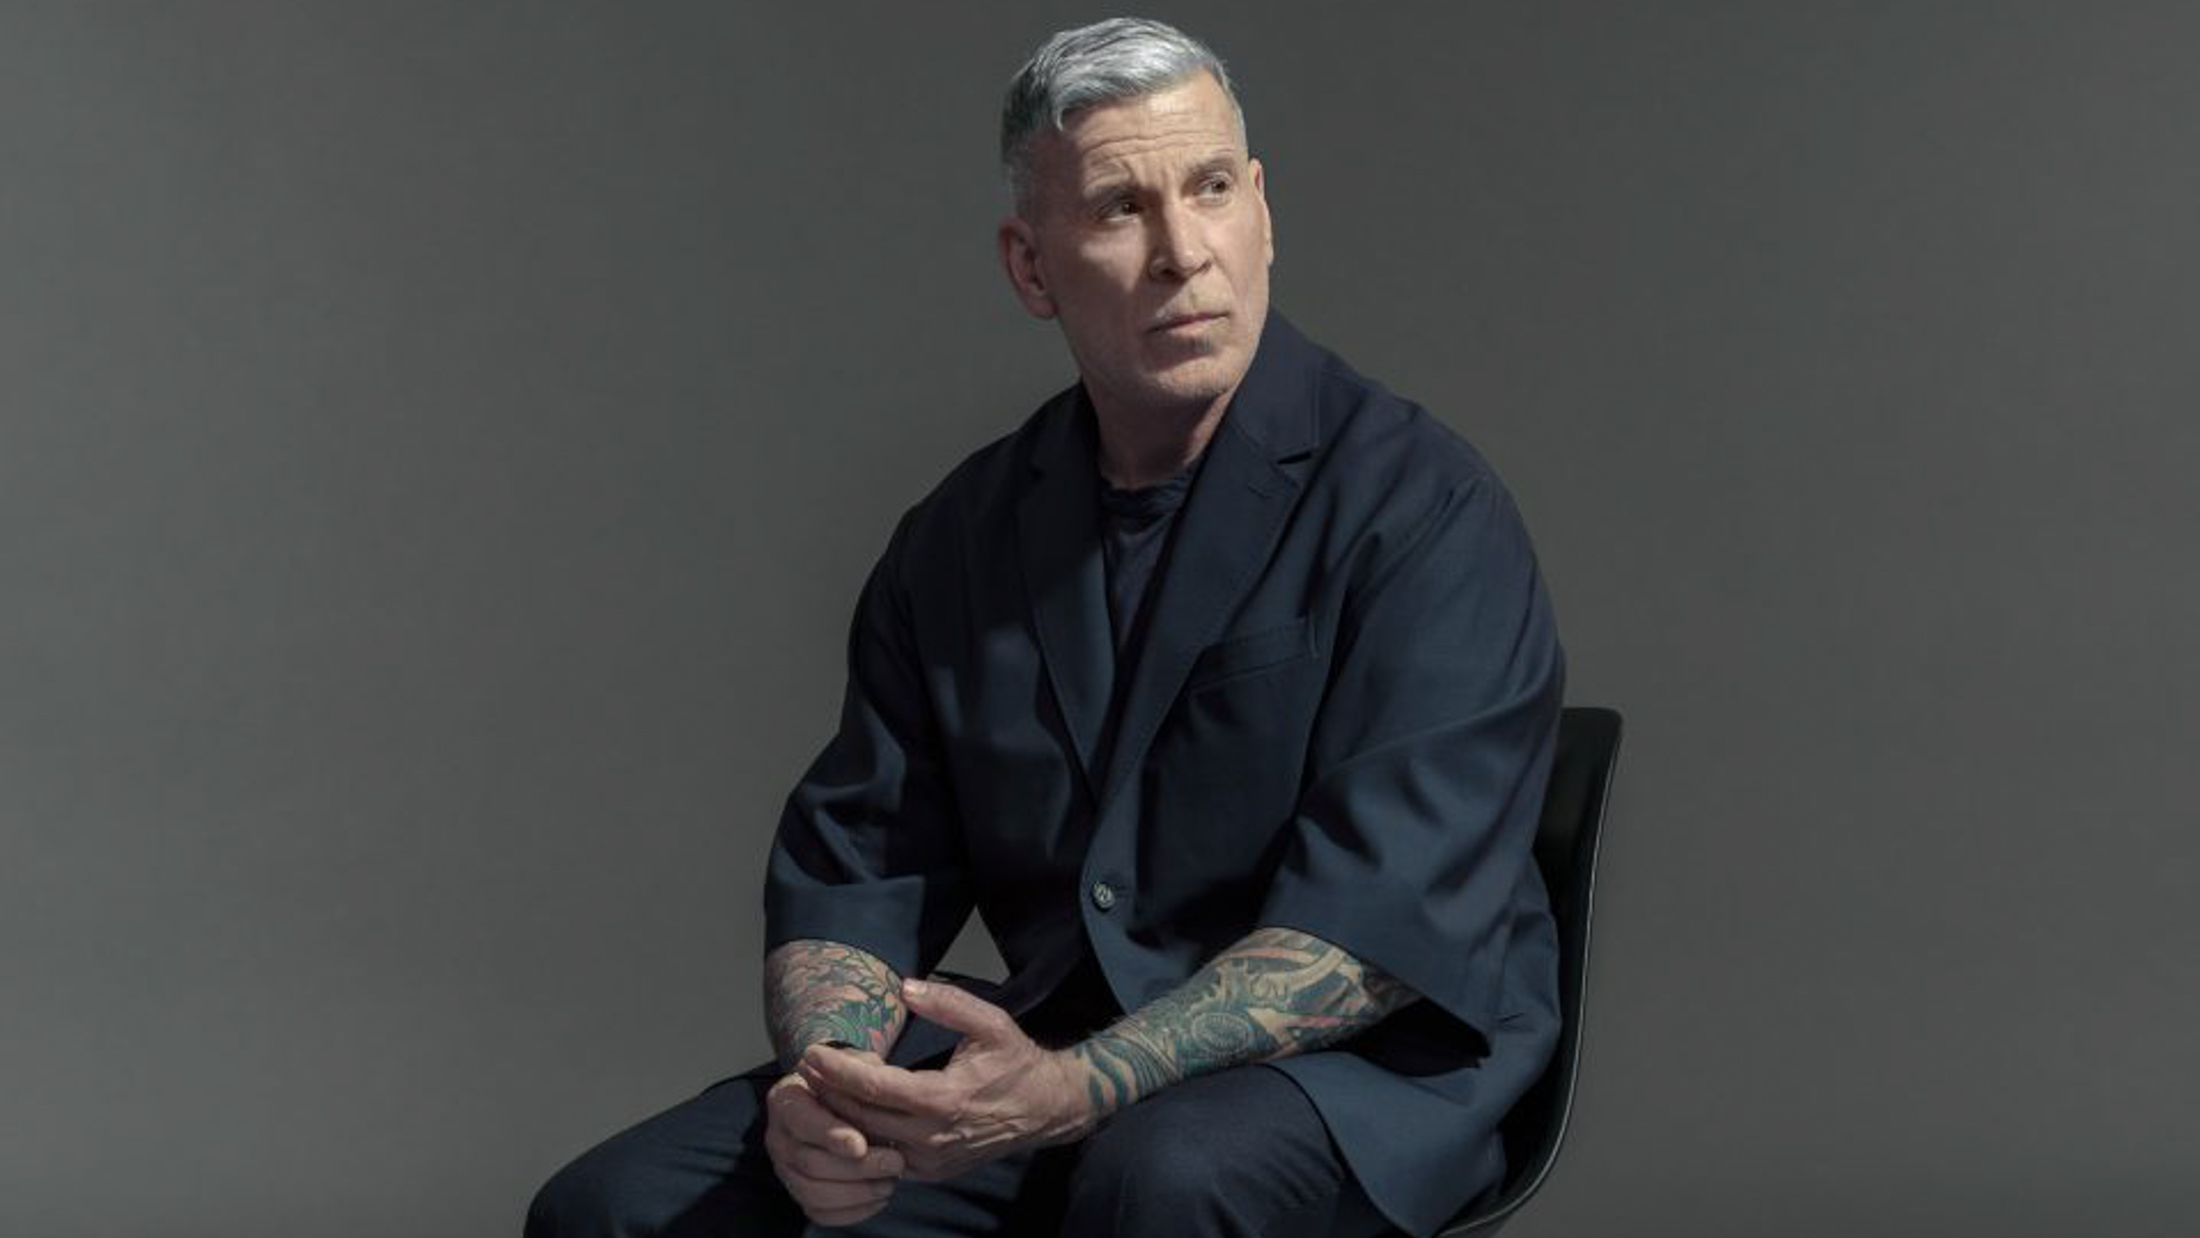 Catching Up With Fashion's Free Agent, Nick Wooster